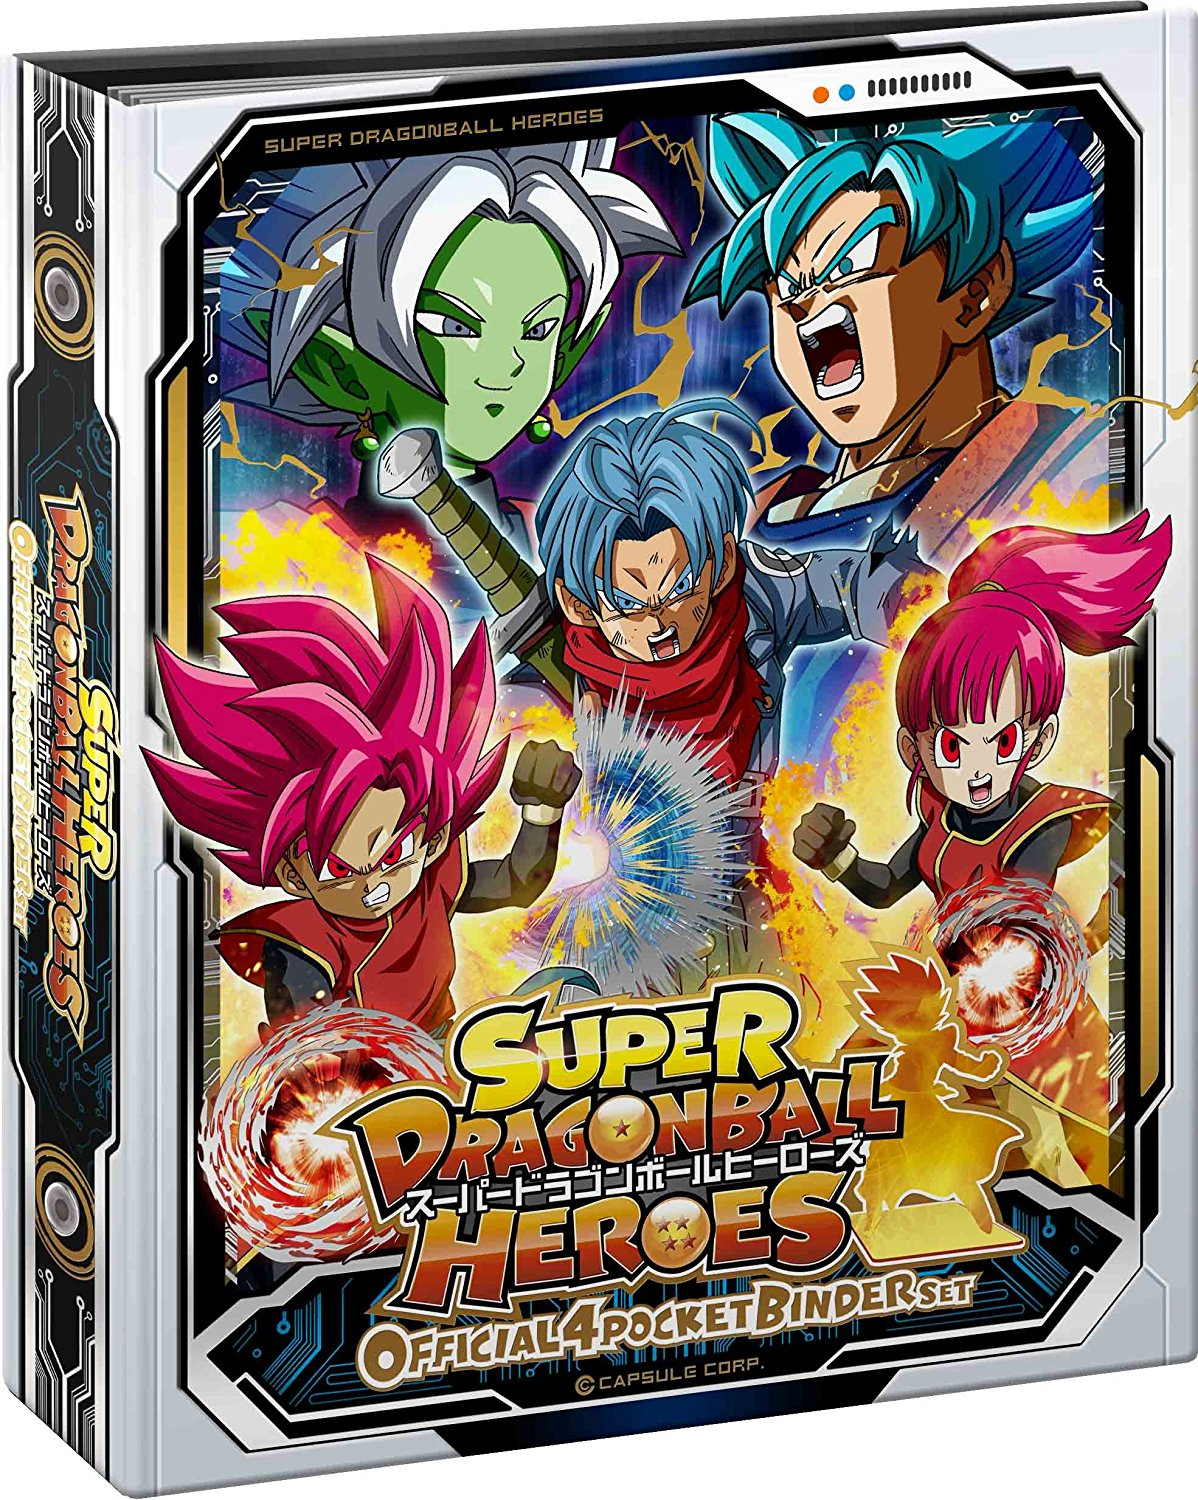 Super Dragon Ball Heroes : Official 4 Pocket Binder Set